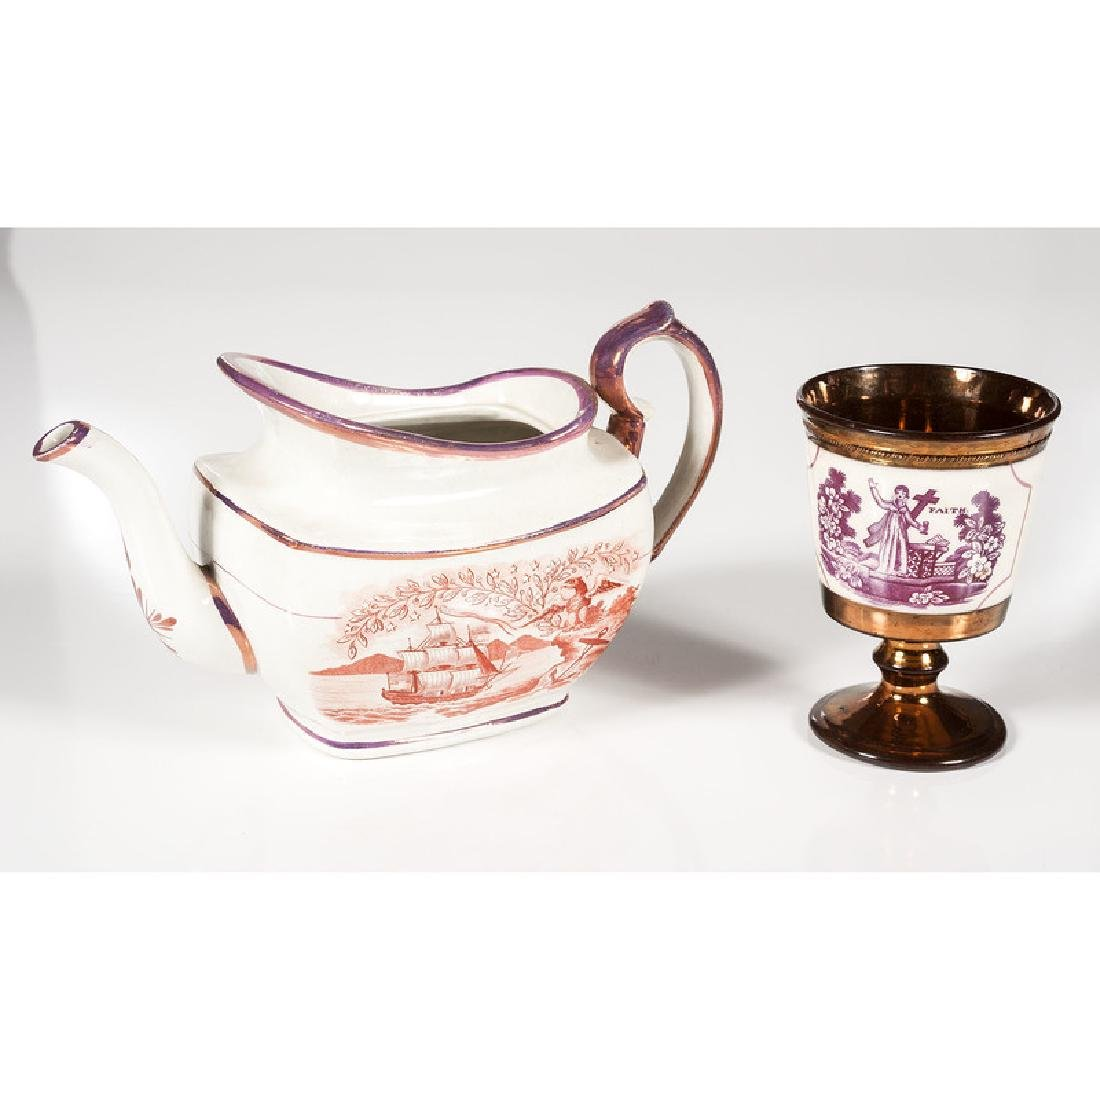 Lusterware Teapot and Goblet - 3